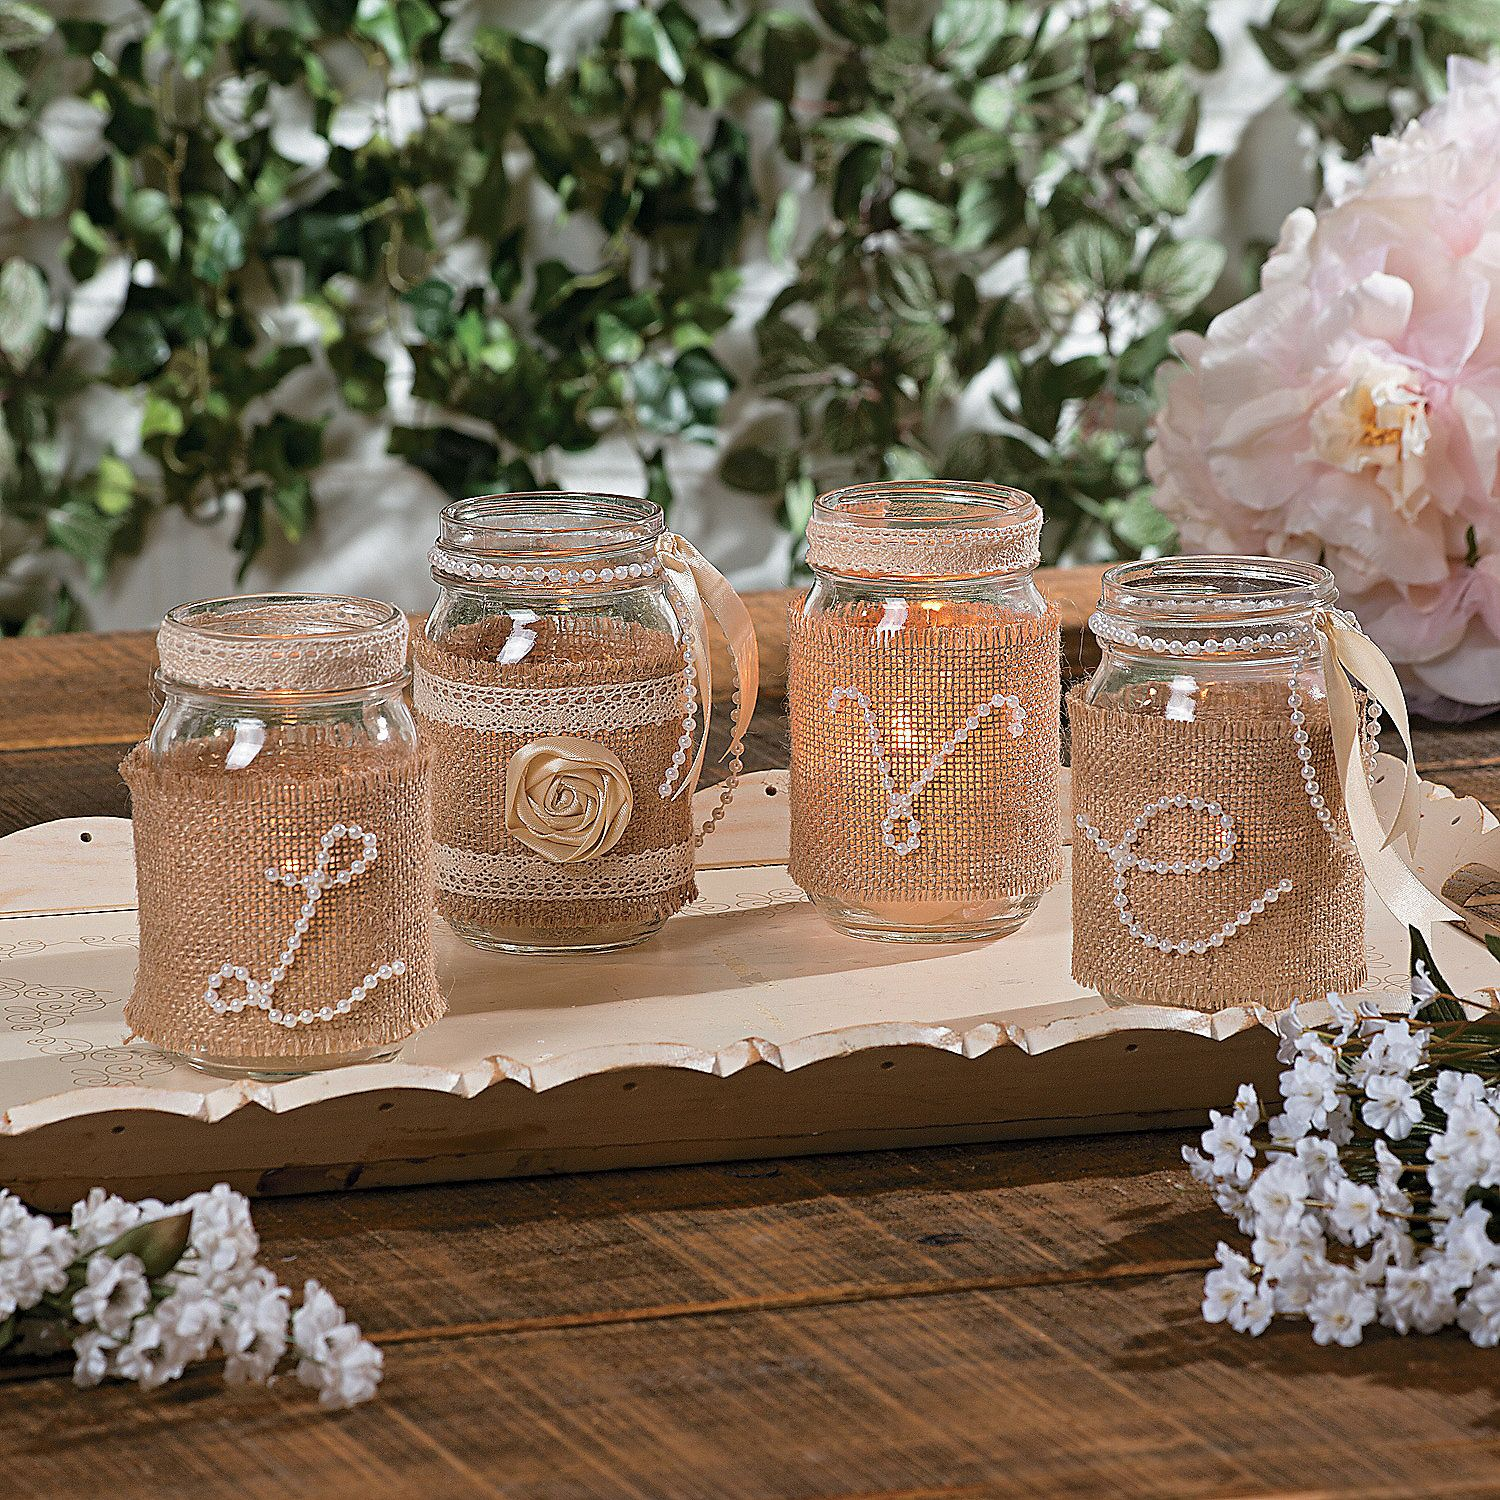 Diy Burlap Wedding Ideas: DIY-wedding Centerpieces, Using Pearls, Burlap, Ribbon And